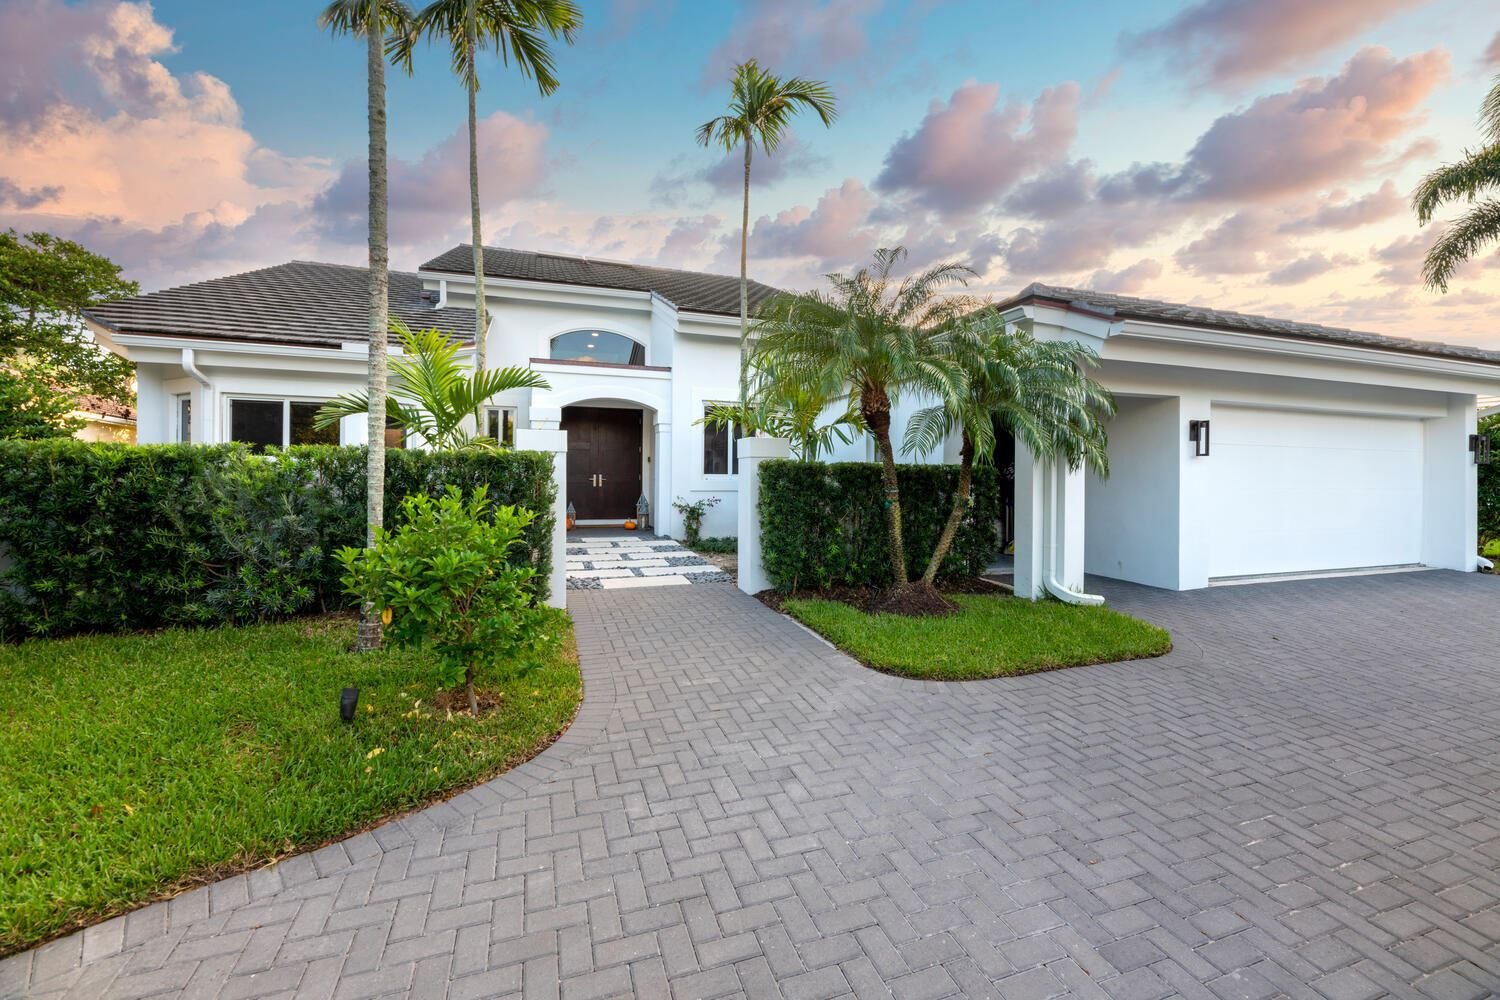 Photo of 114 Regatta Drive, Jupiter, FL 33477 (MLS # RX-10672656)